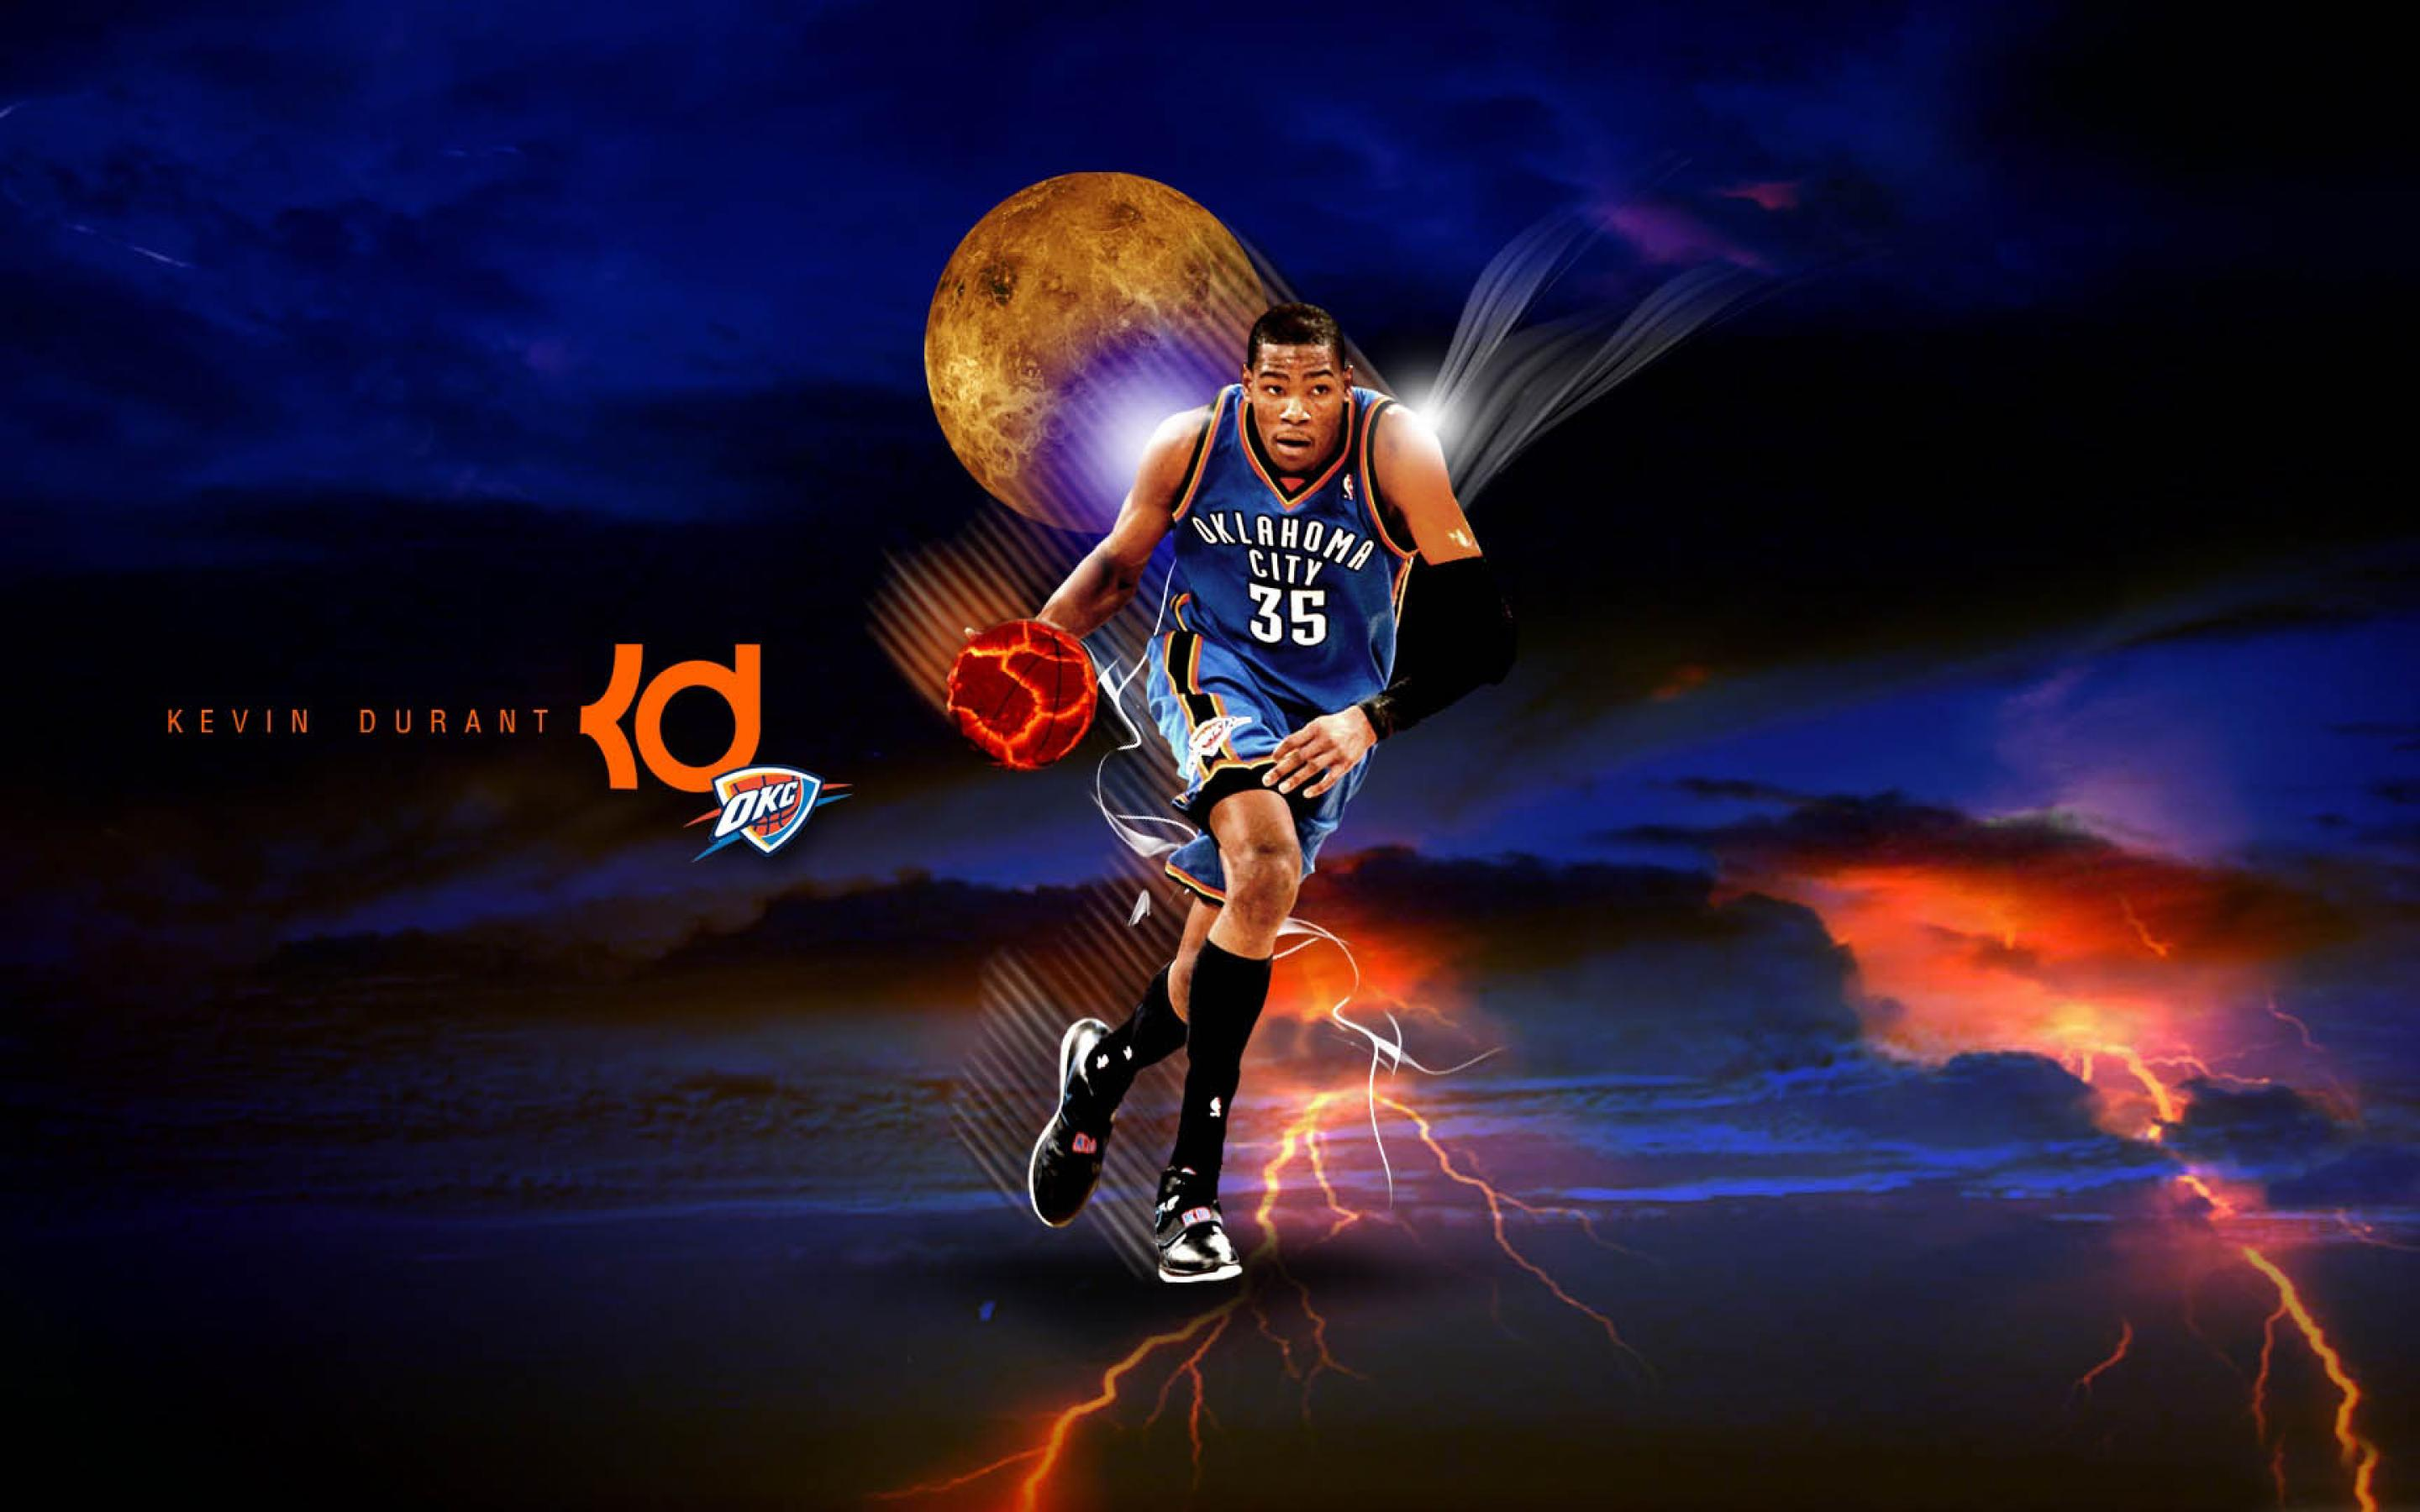 Kd Background Page 1